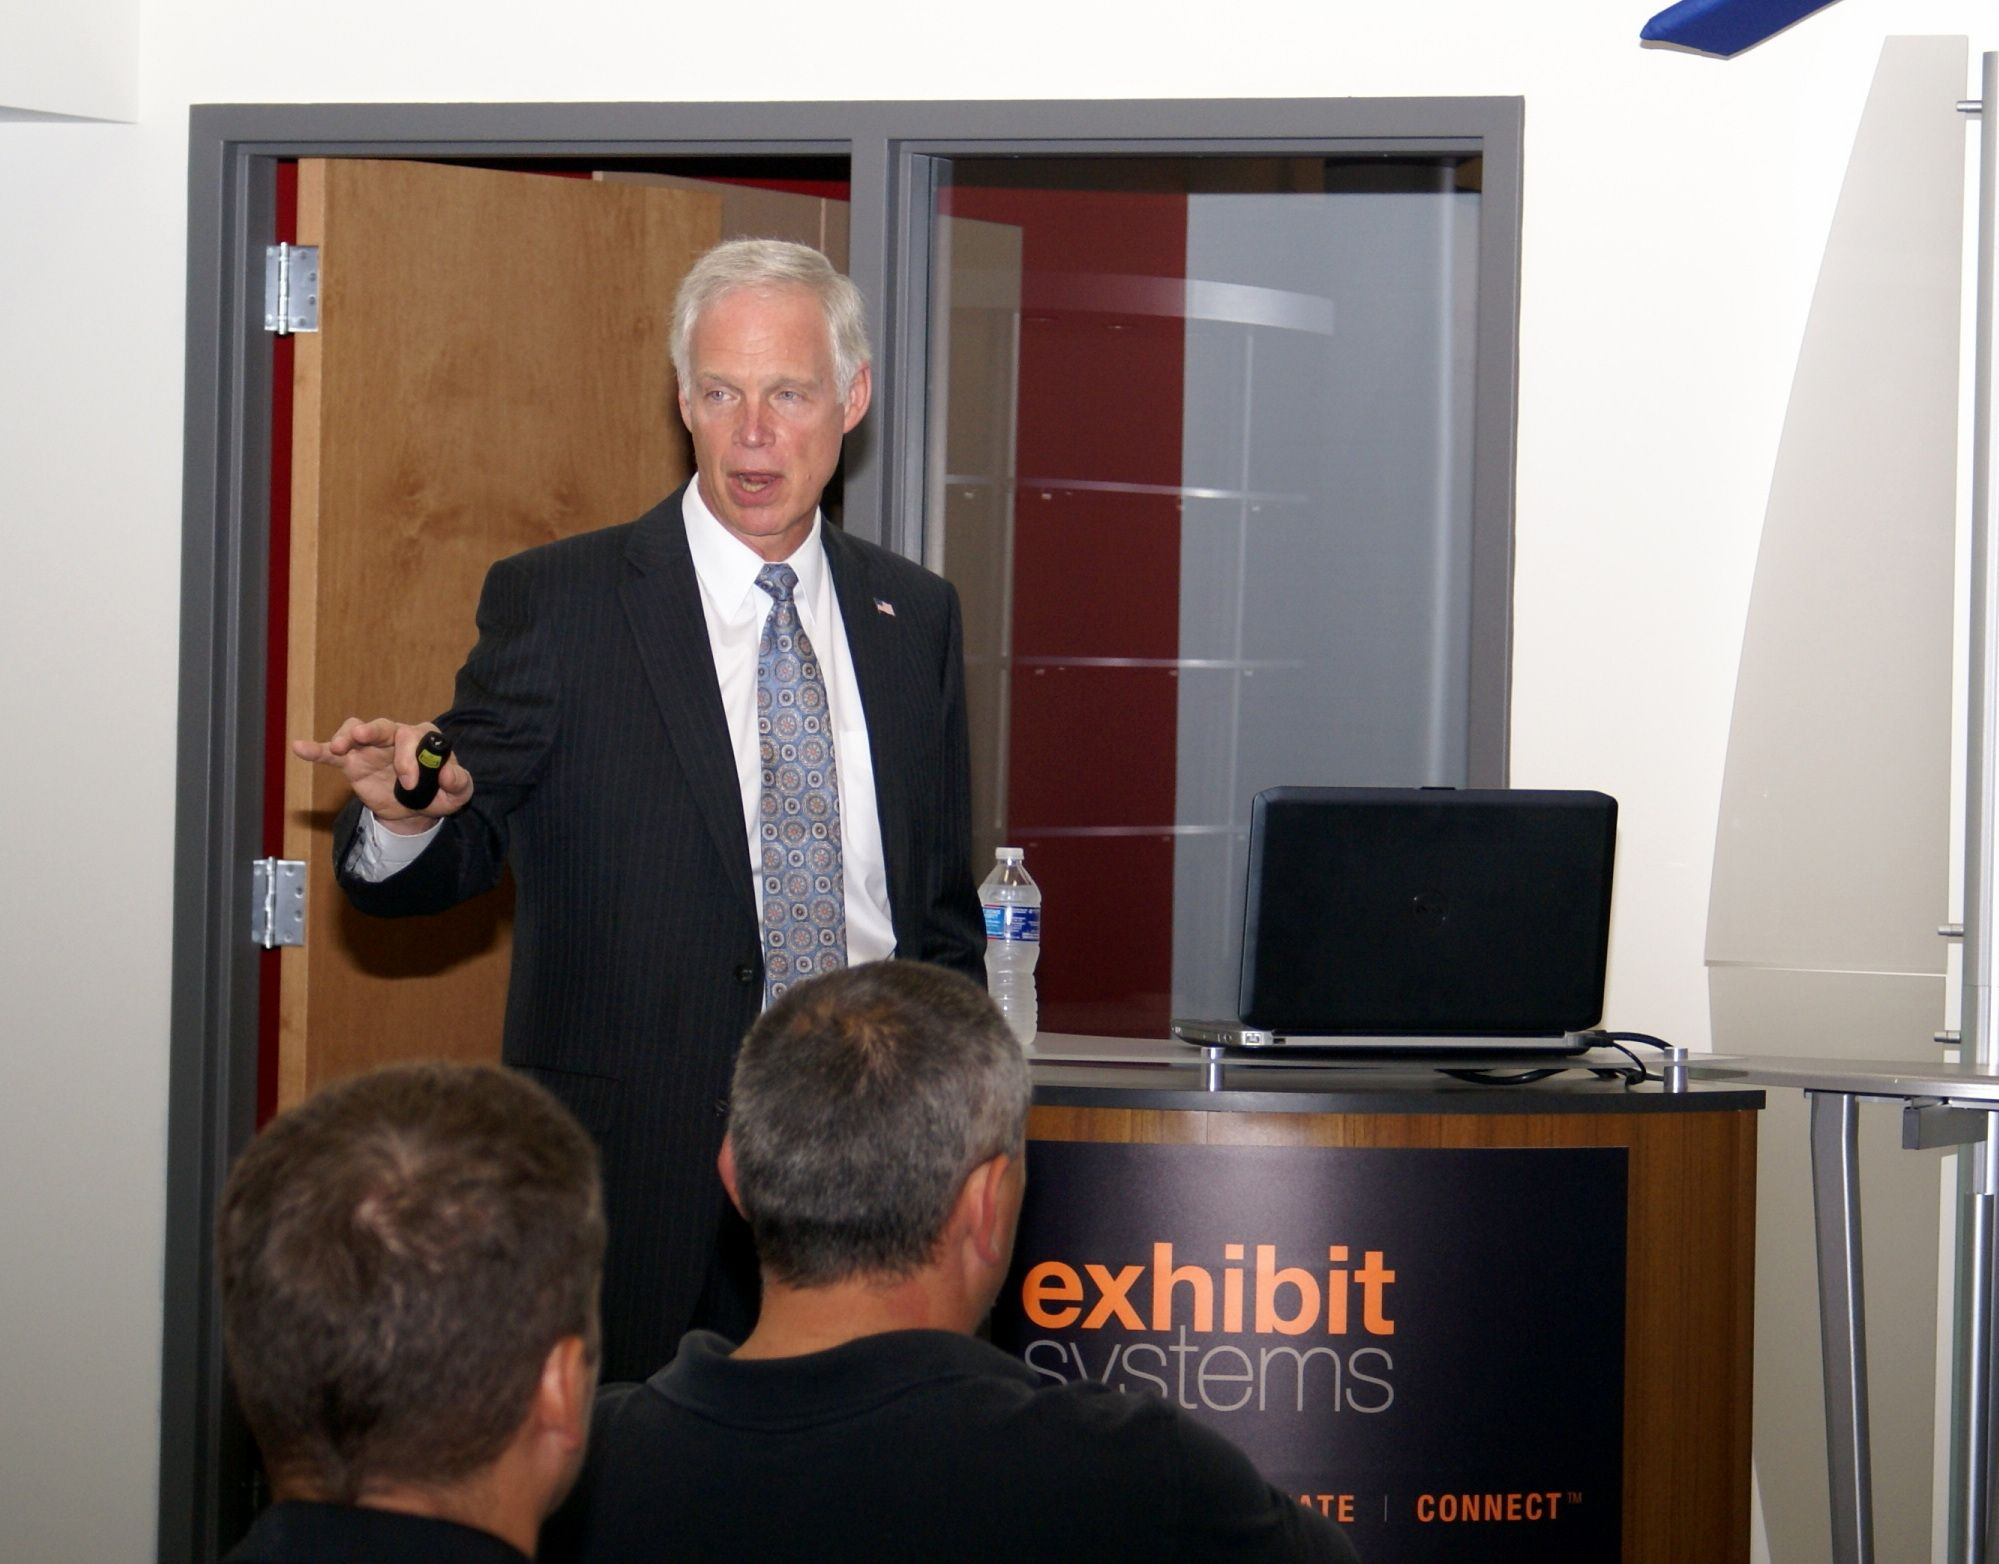 U.S. Sen. Ron Johnson addresses employees at Exhibit Systems Wednesday